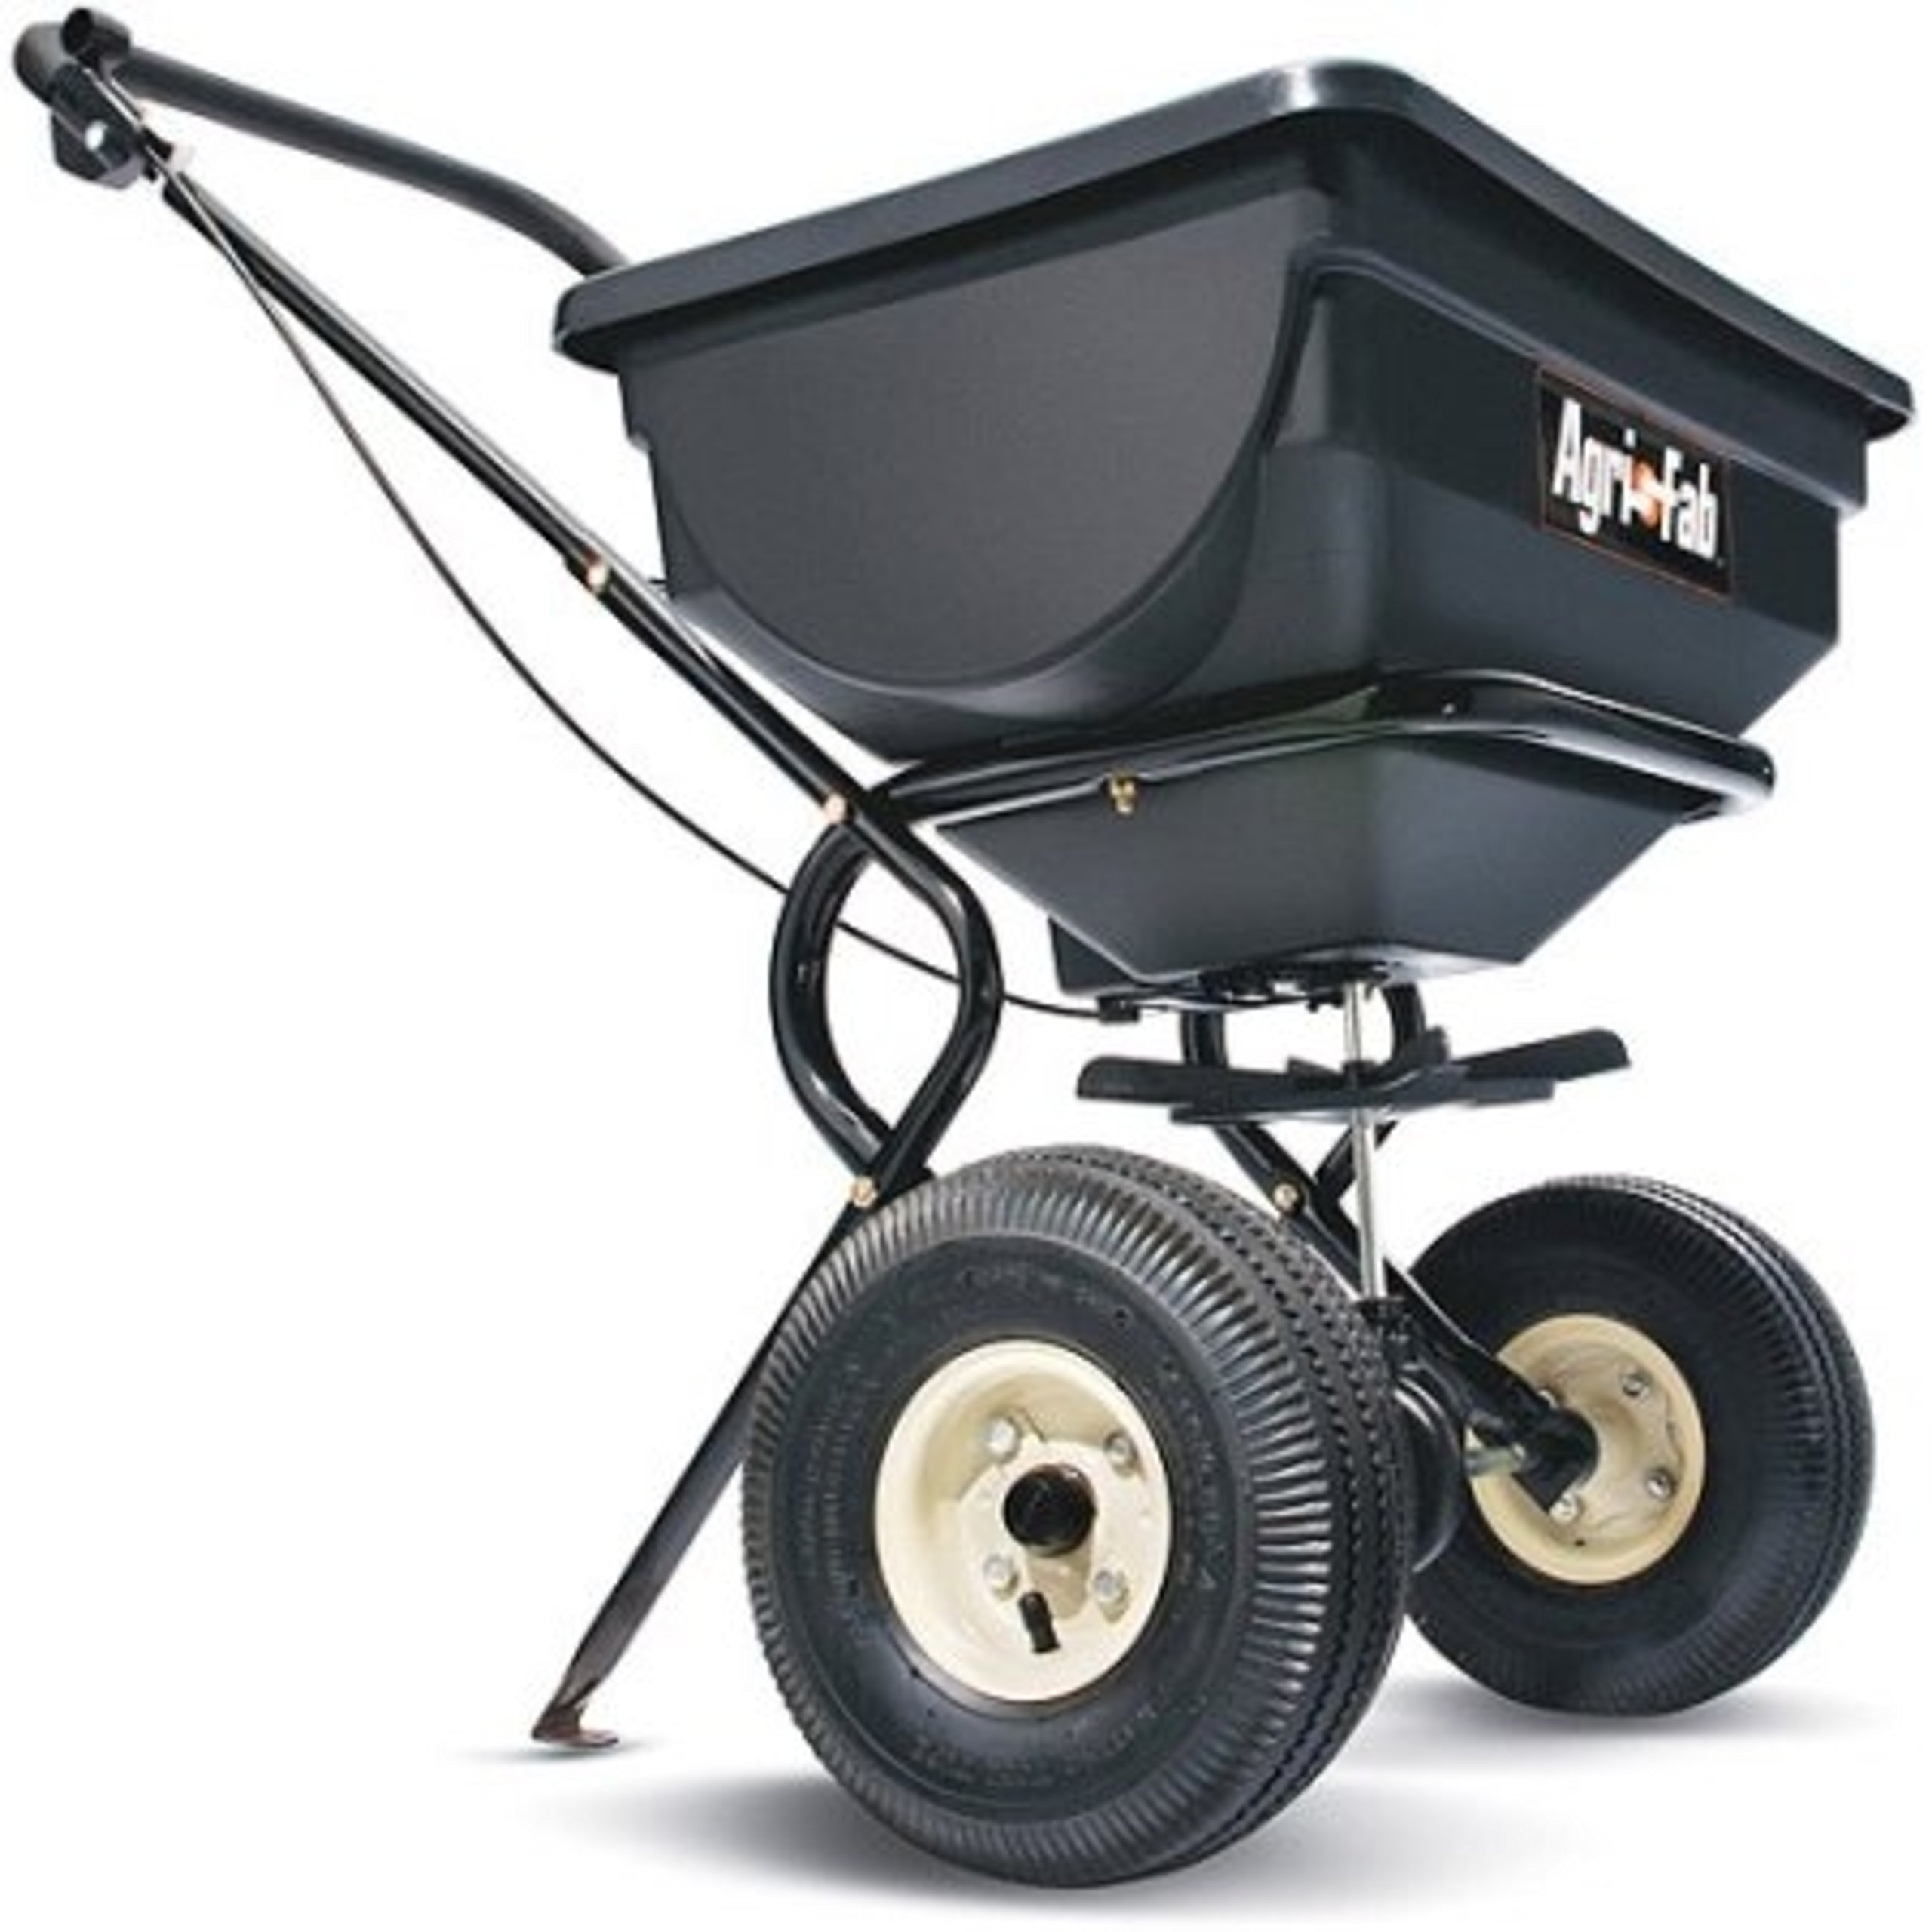 Push Gardening Tools Broadcast Spreader by Agri-Fab